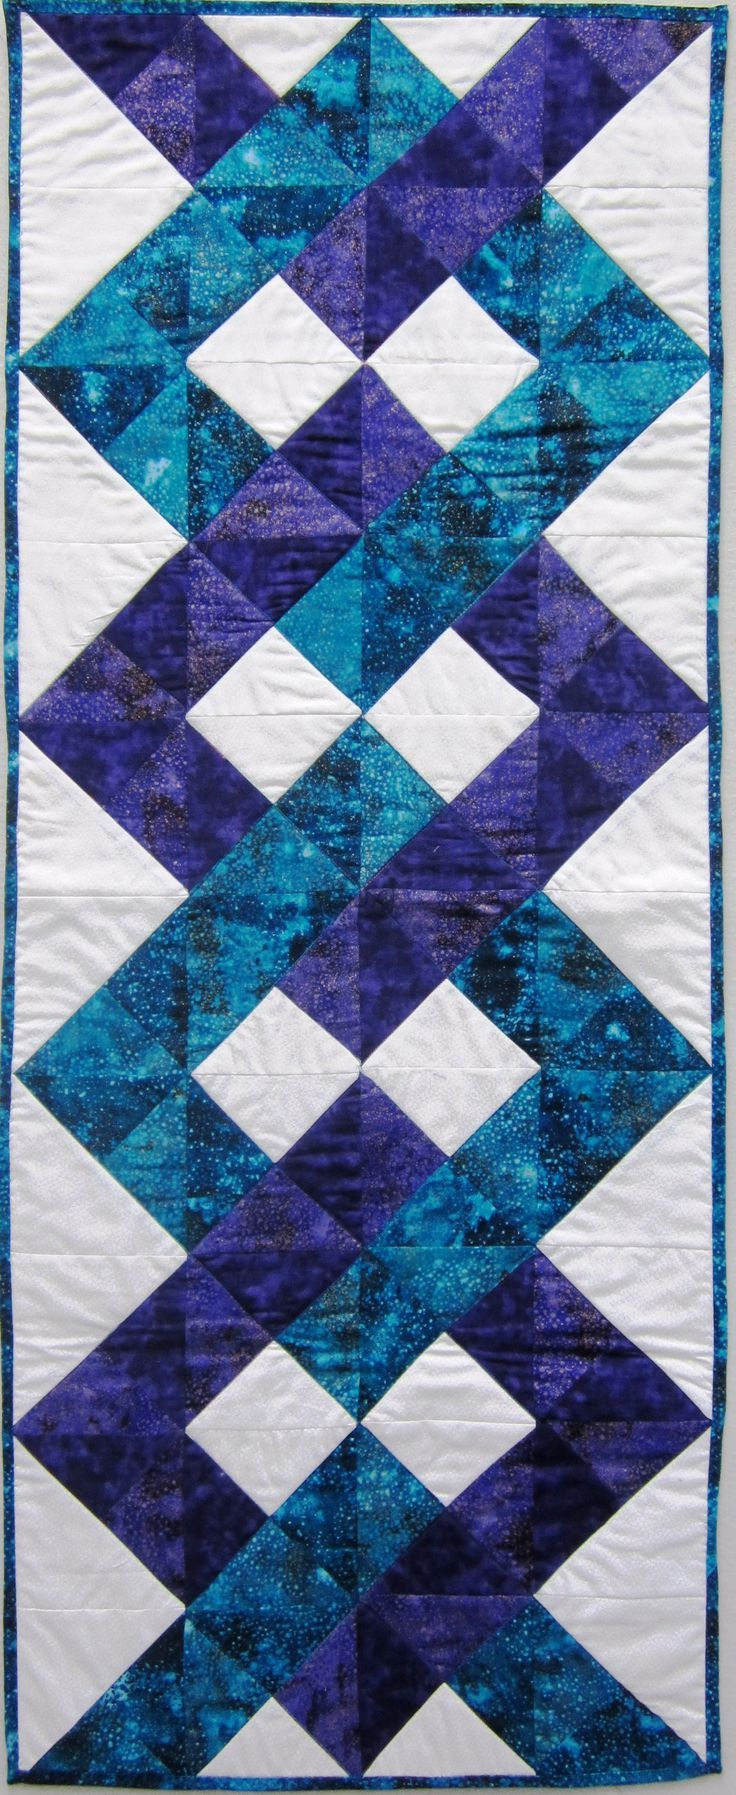 17 diy quilted table runner ideas for all year round for Kitchen quilting ideas